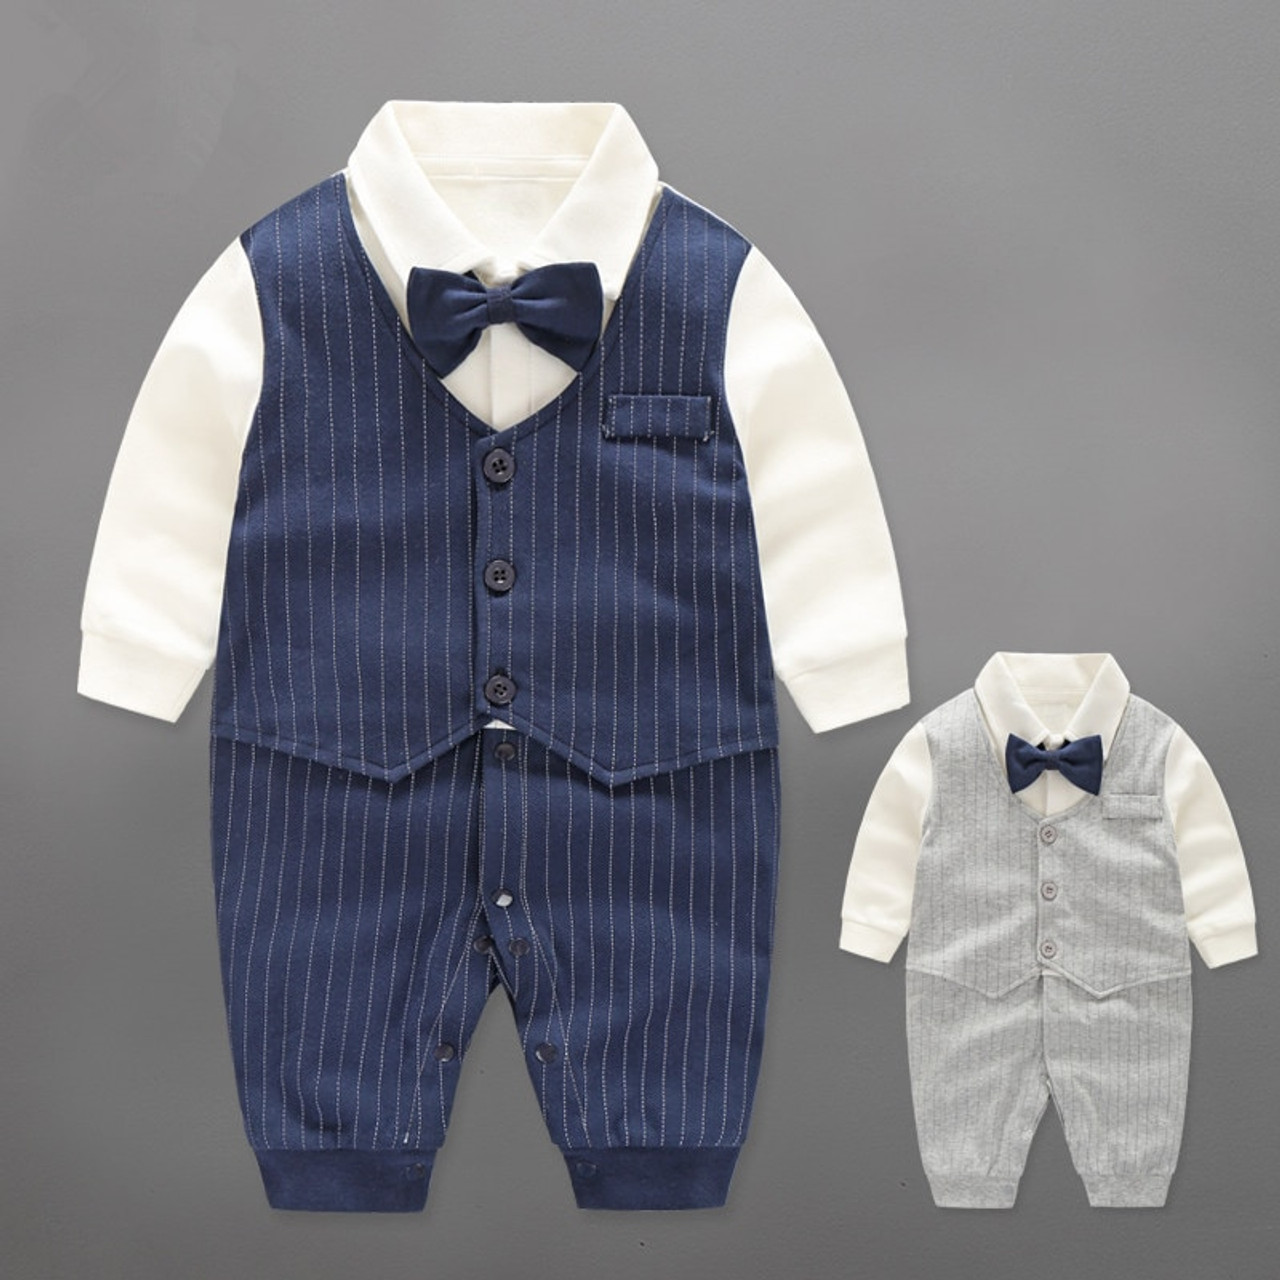 898fcec5a7cbc Baby Boy Rompers Cotton Bow Tie Gentleman Party Clothing Spring Toddler  Prince Costume Infant Jumpsuits Newborn Boys Clothes